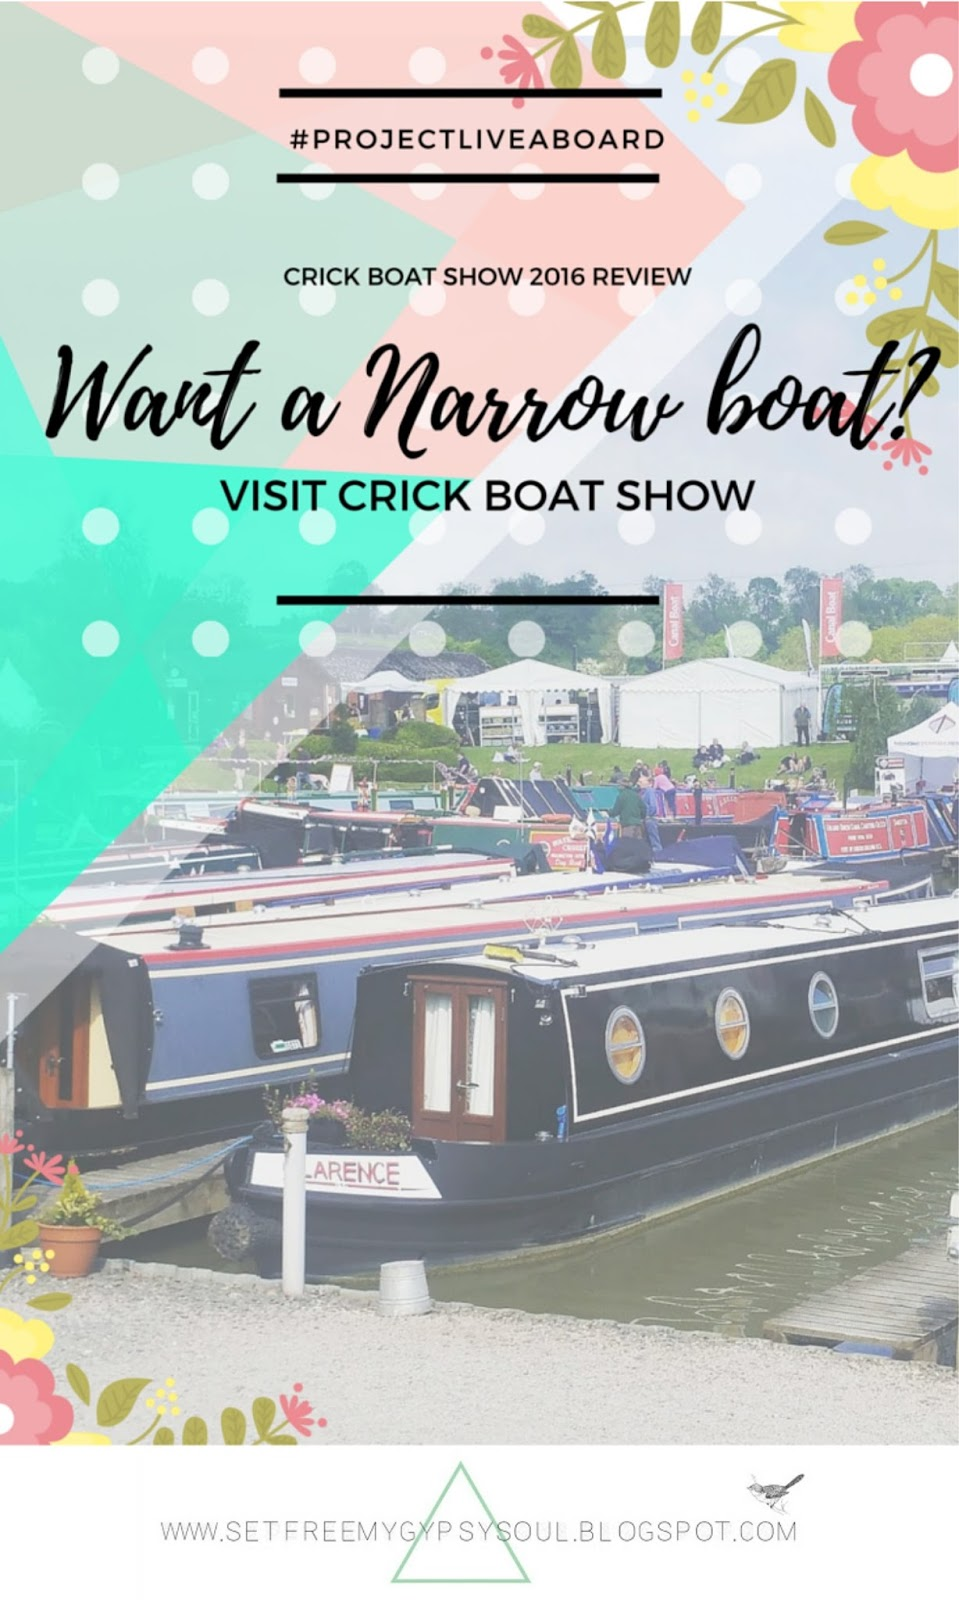 crick boat show 2016 review boat handling sessions waterways world